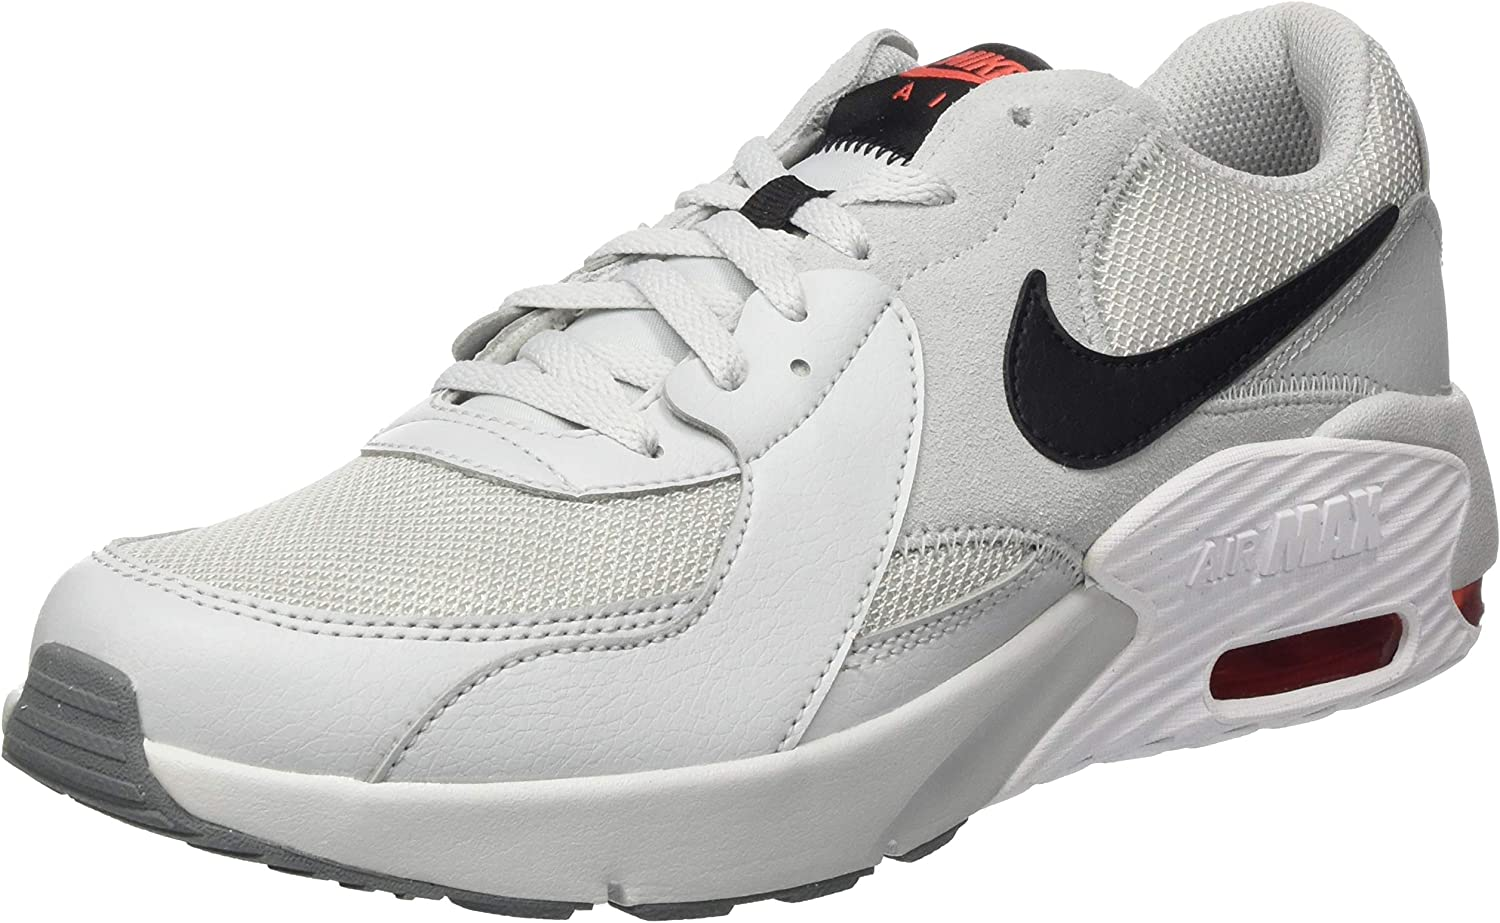 Nike Air Max Excee GS Running Trainers Cd6894 Sneakers Shoes